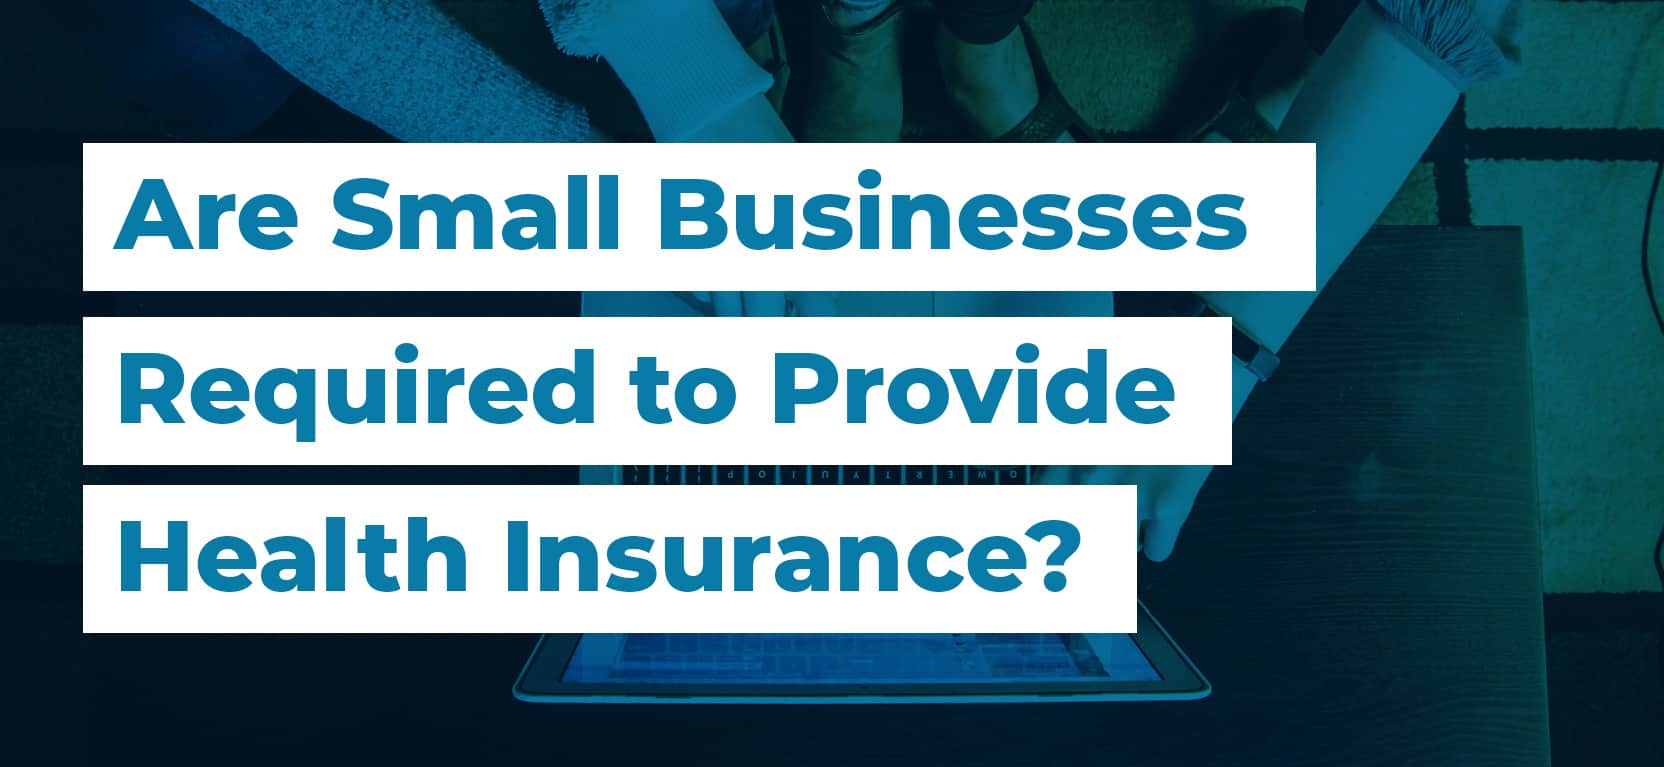 52 Are Small Businesses Required to Provide Health Insurance3